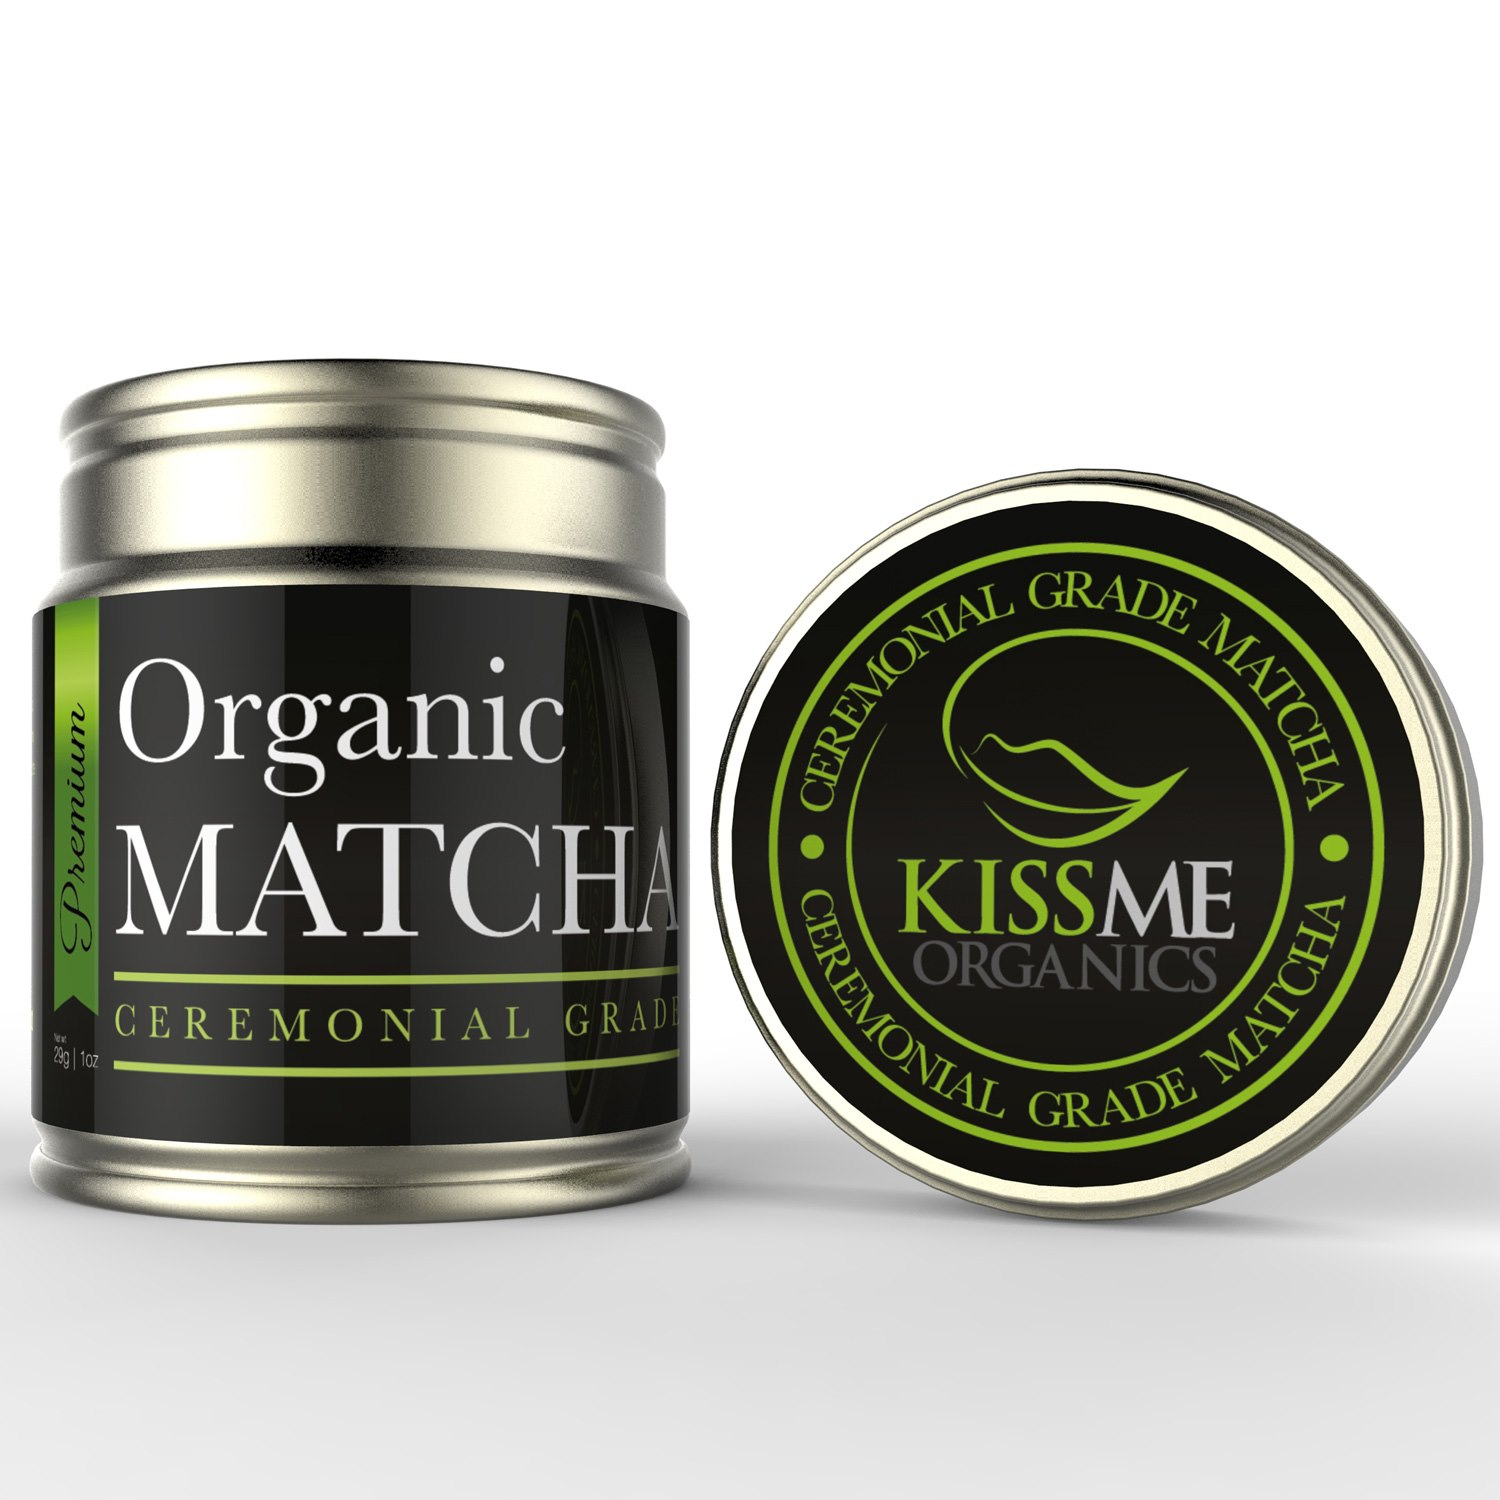 http://www.amazon.com/organic-matcha-ceremonial-concentration-antioxidants/dp/b00m27yot2